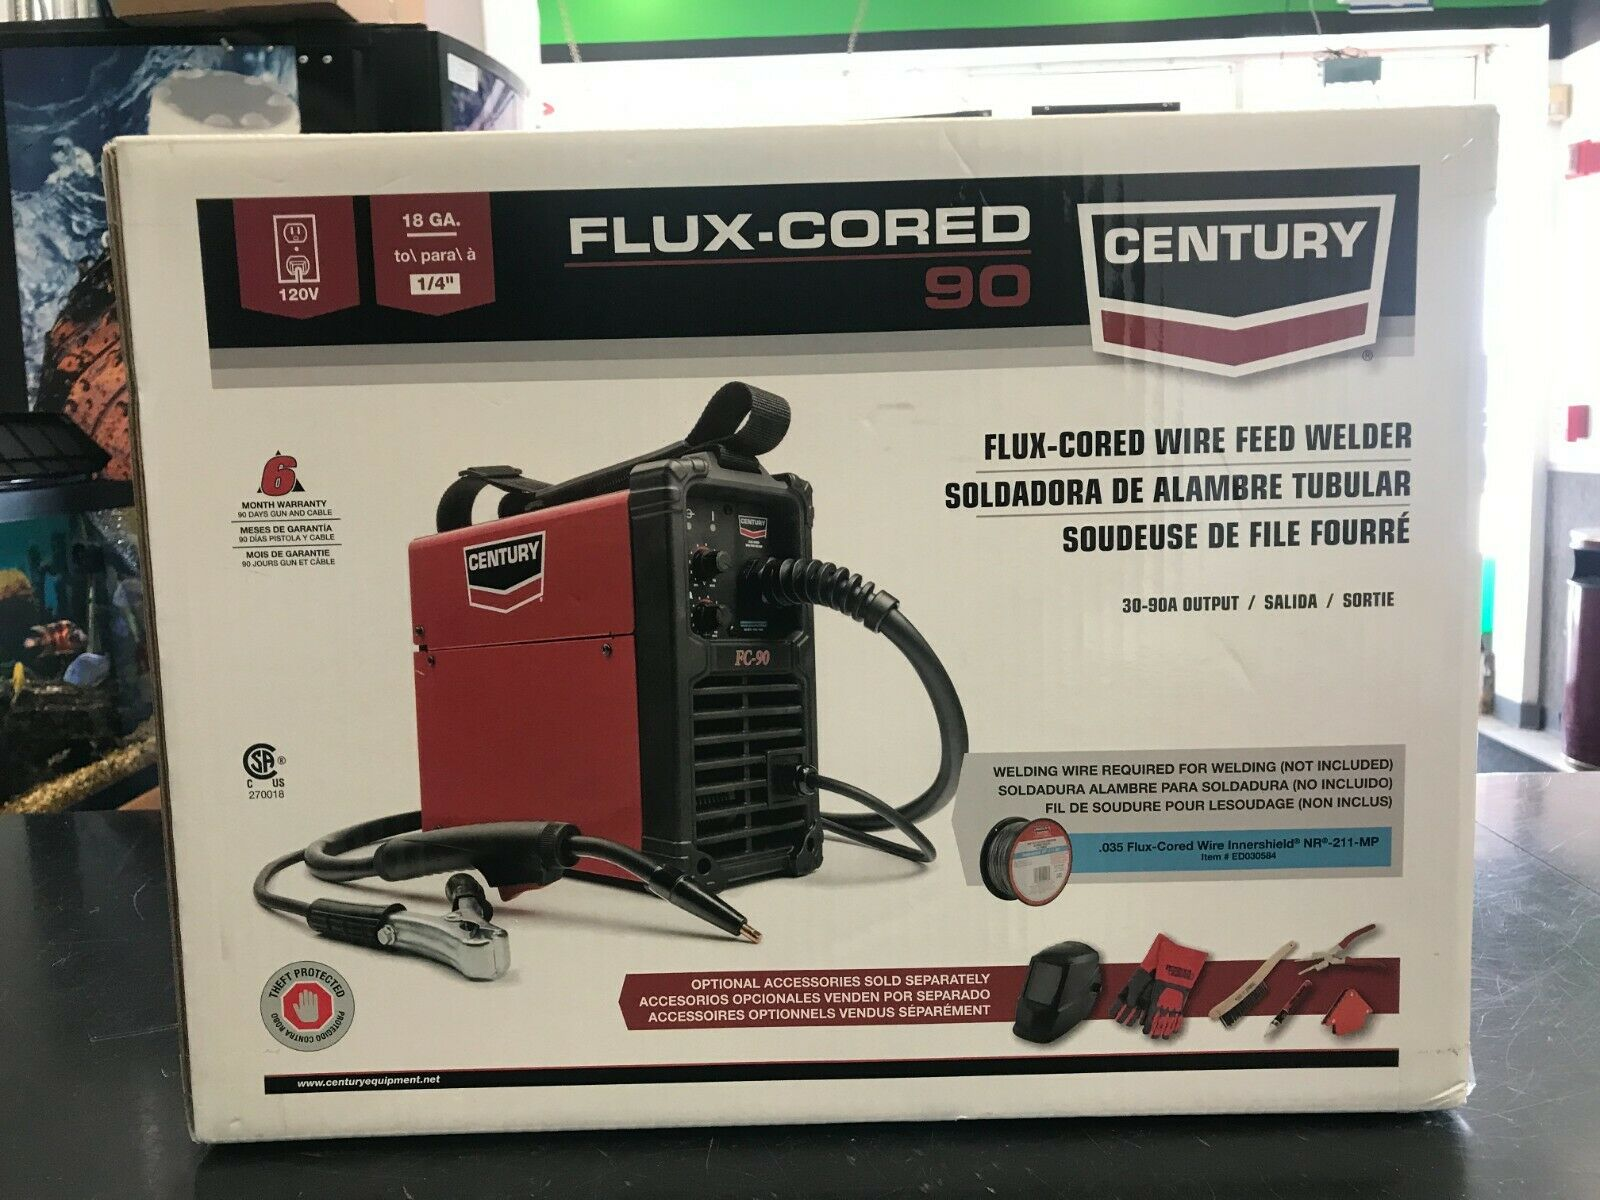 Century Flux-Cored 90 Wire Feed Welder - New in Box. Available Now for 198.95